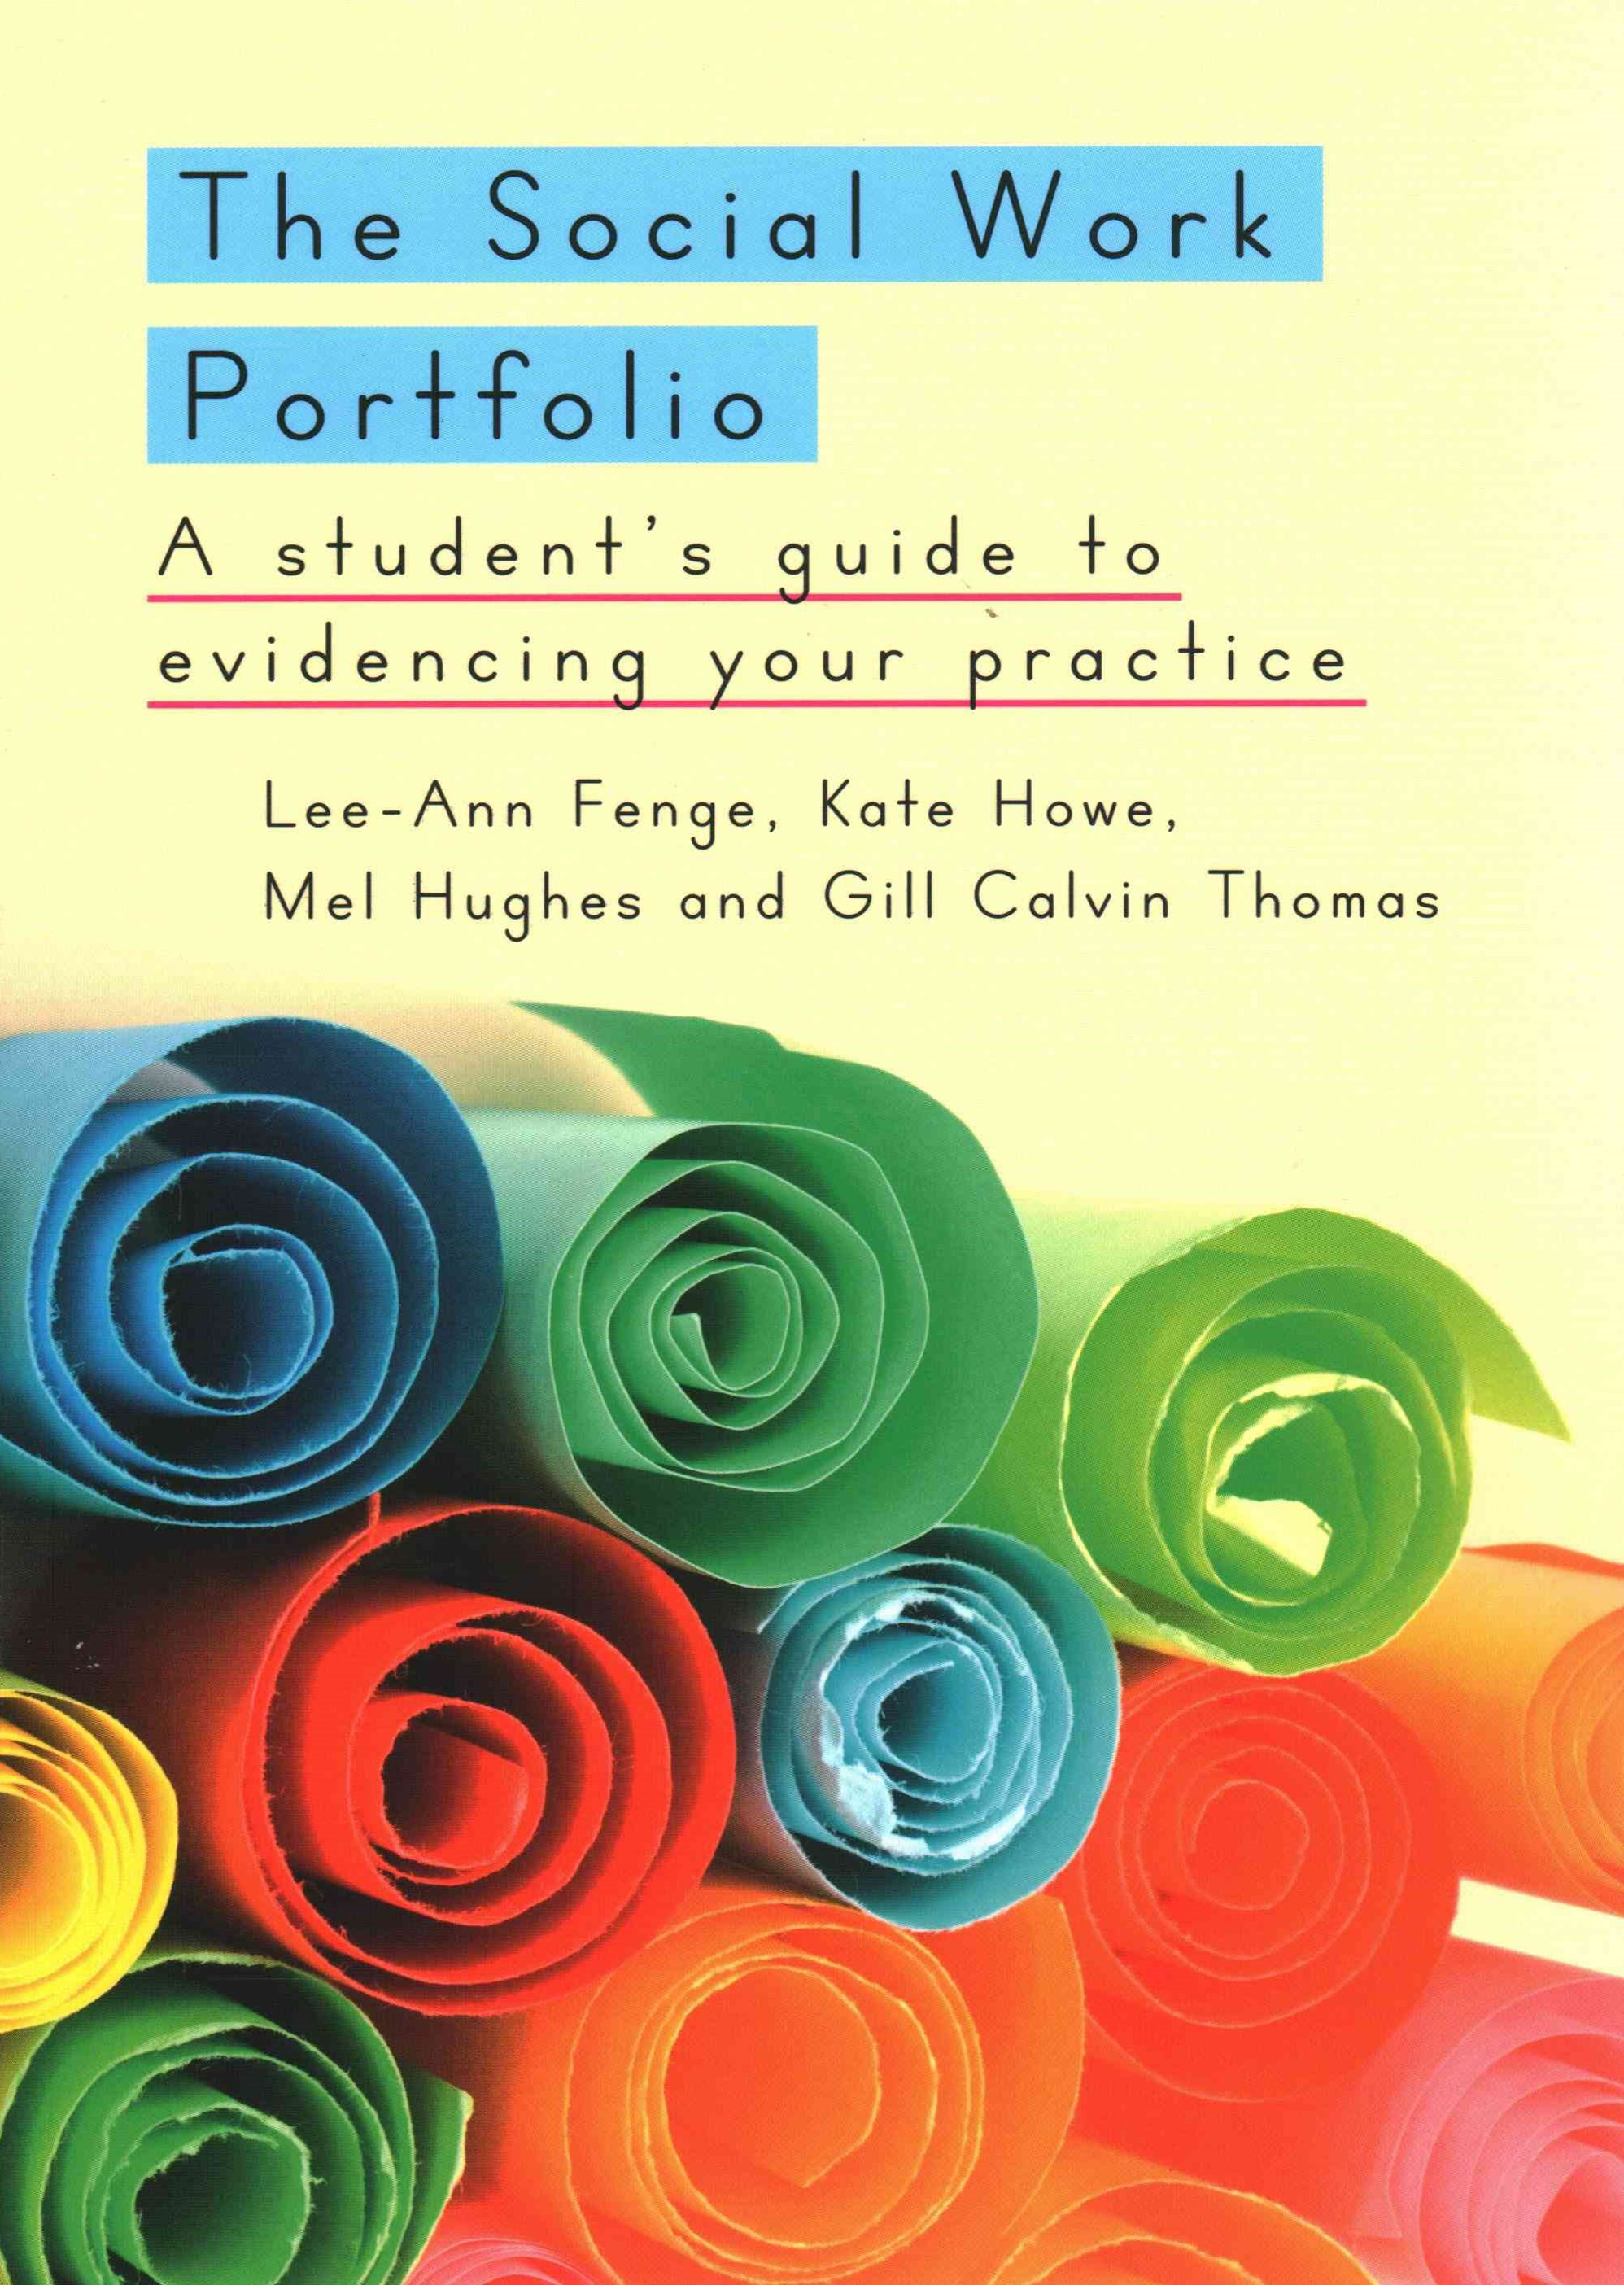 Social Work Portfolio: A Student's Guide to Evidencing Your Practice